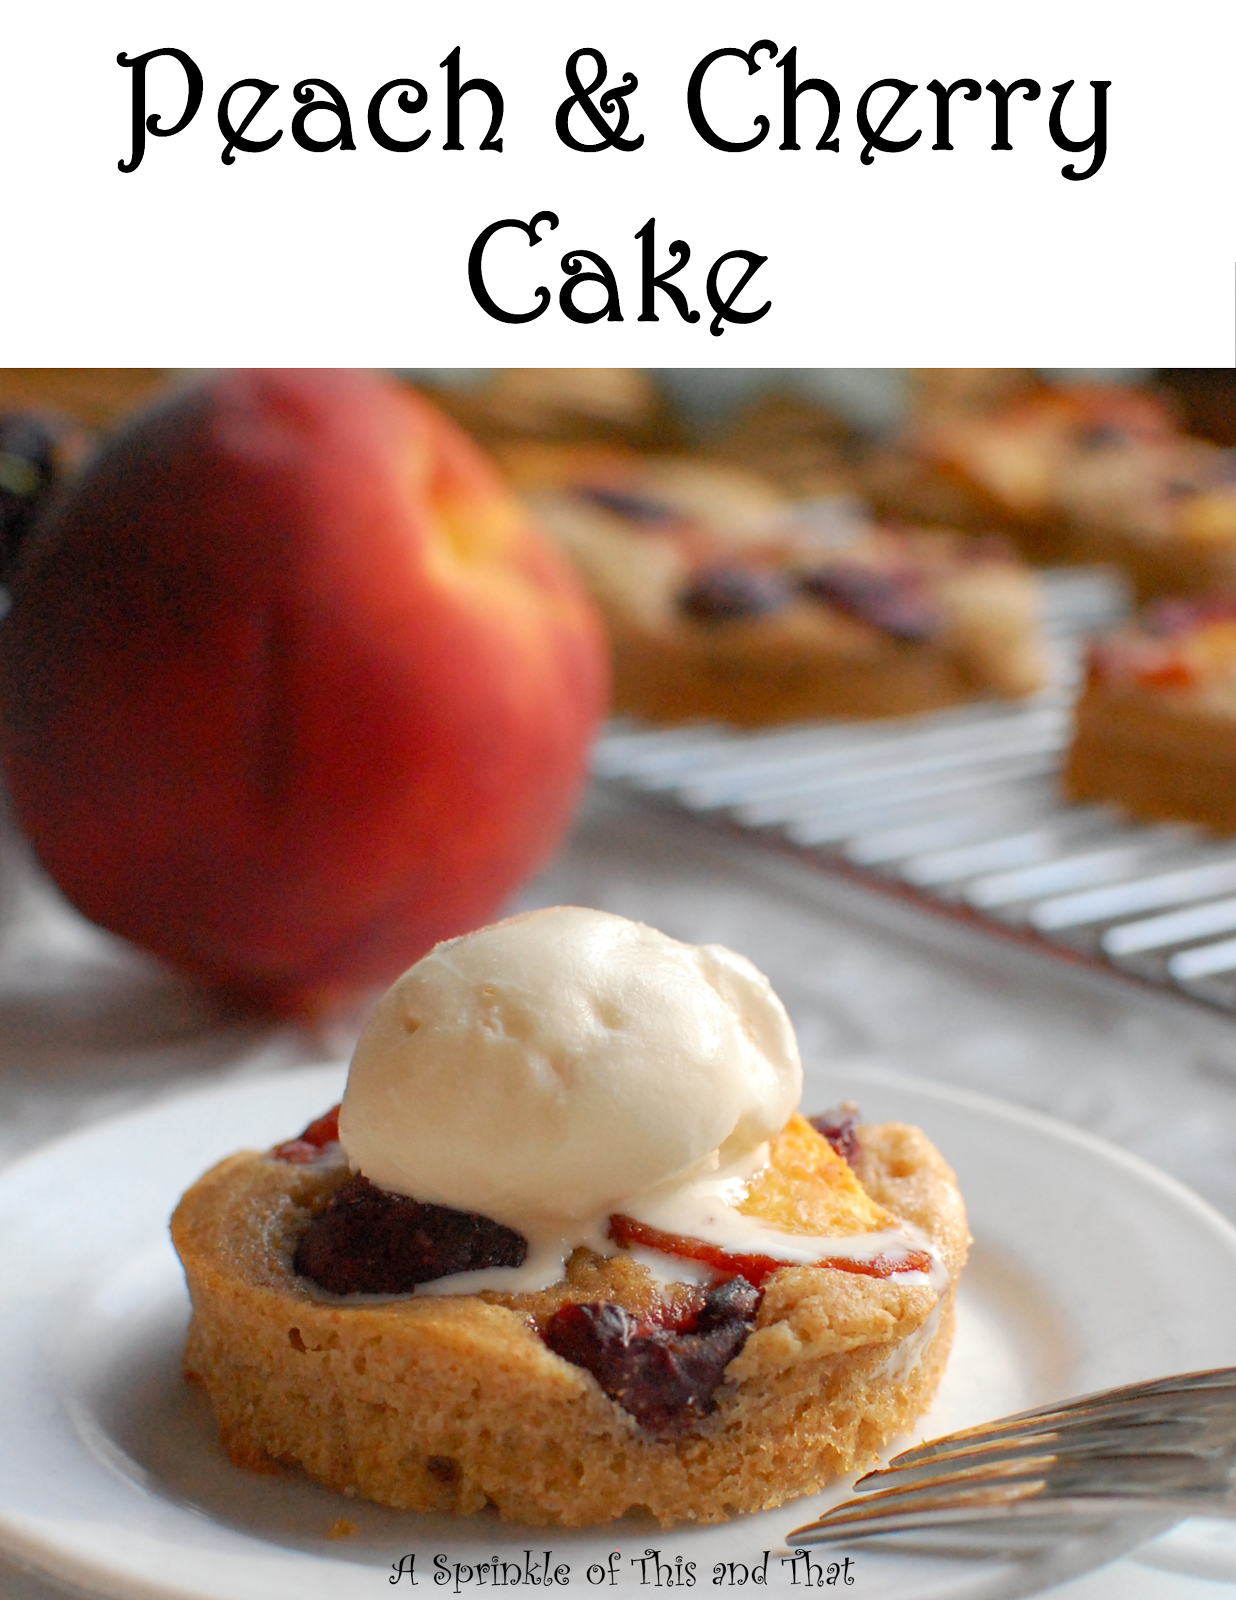 Baked goods clipart fruit cobbler. A sprinkle of this